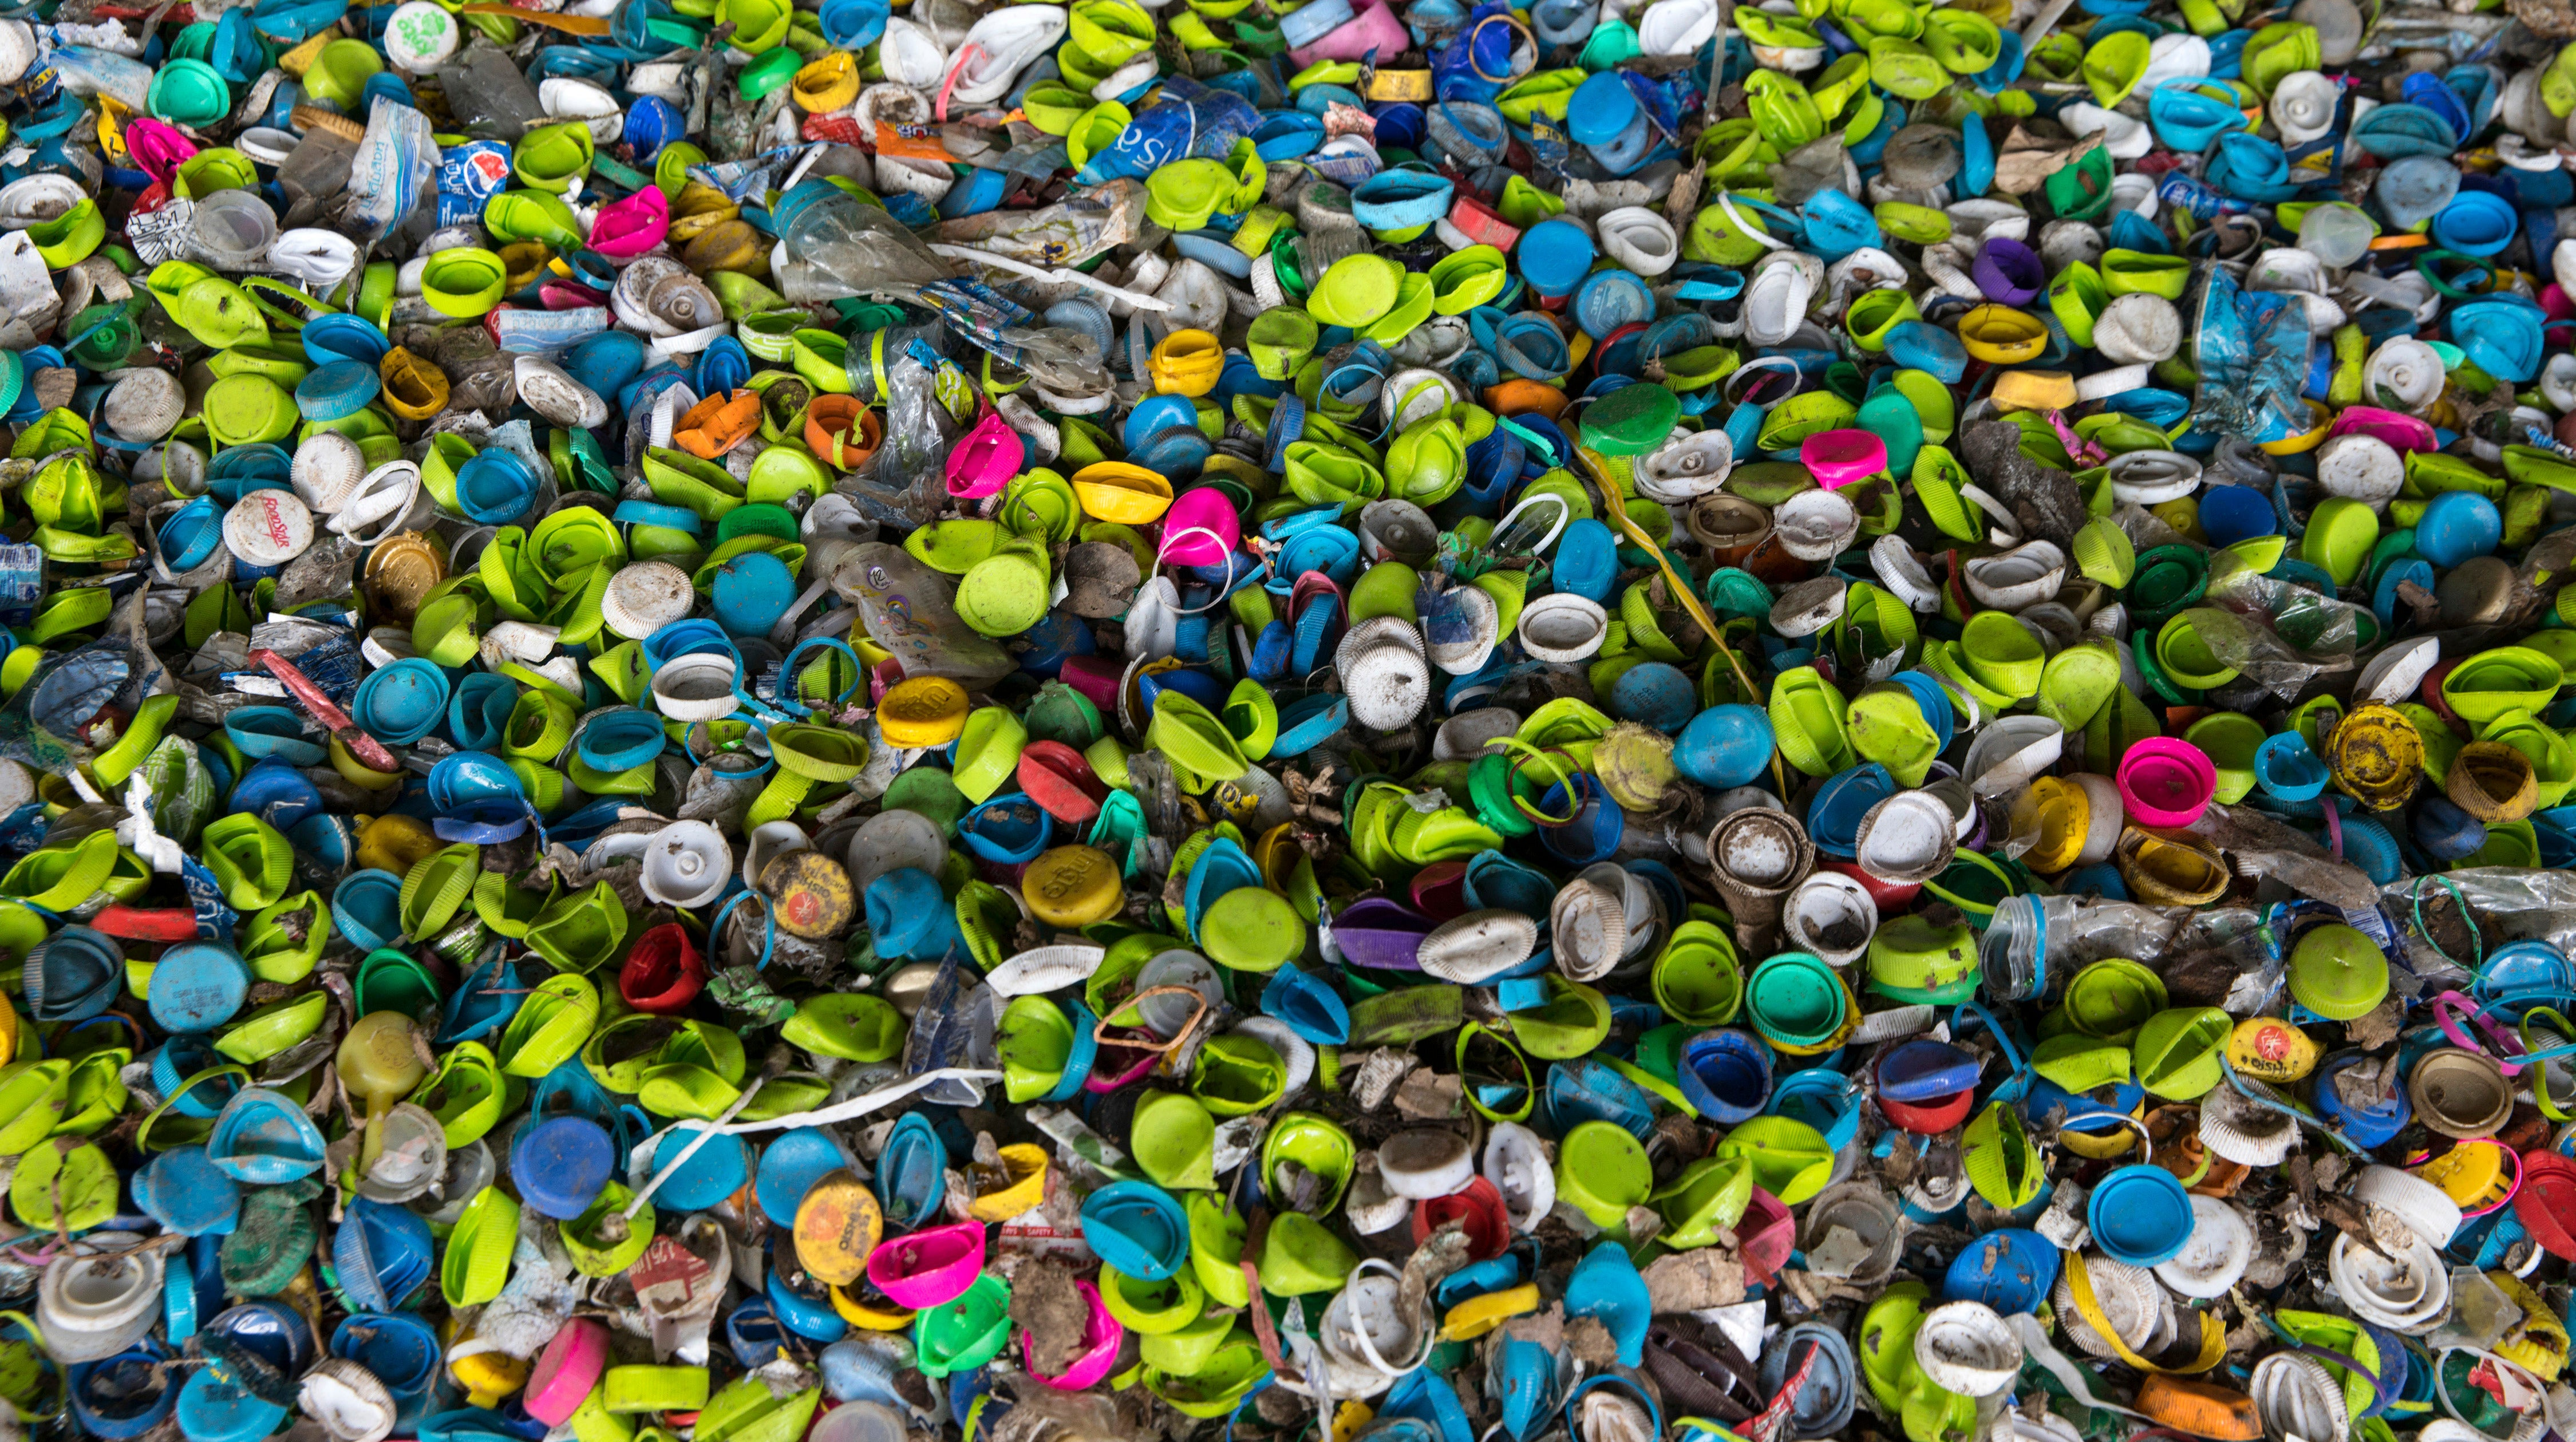 Stop Recycling Plastic Bottles Without Caps On